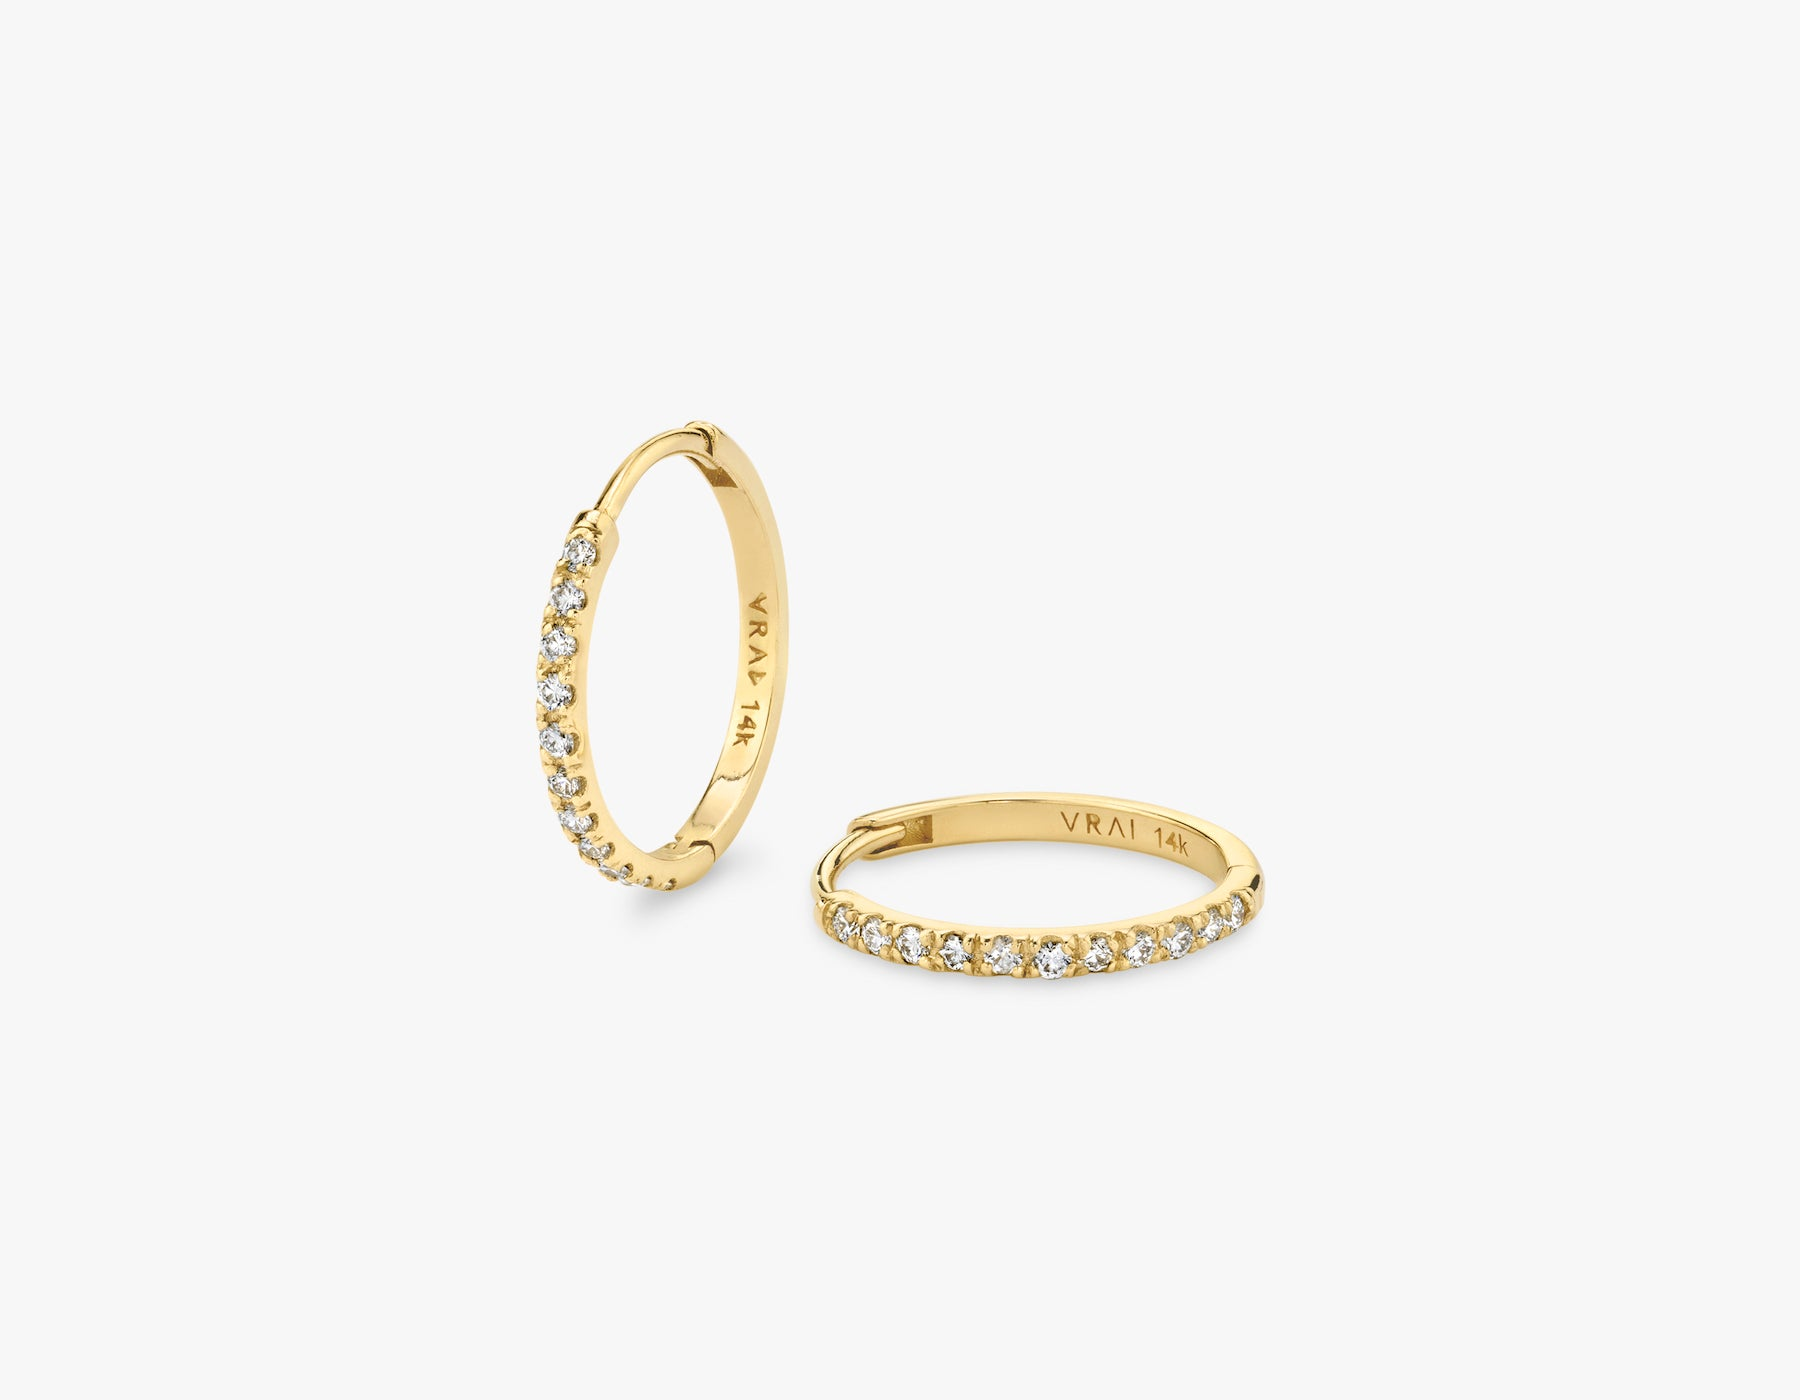 Vrai 14k solid gold simple classic Pave Diamond Huggie Hoops earrings hinge closure, 14K Yellow Gold